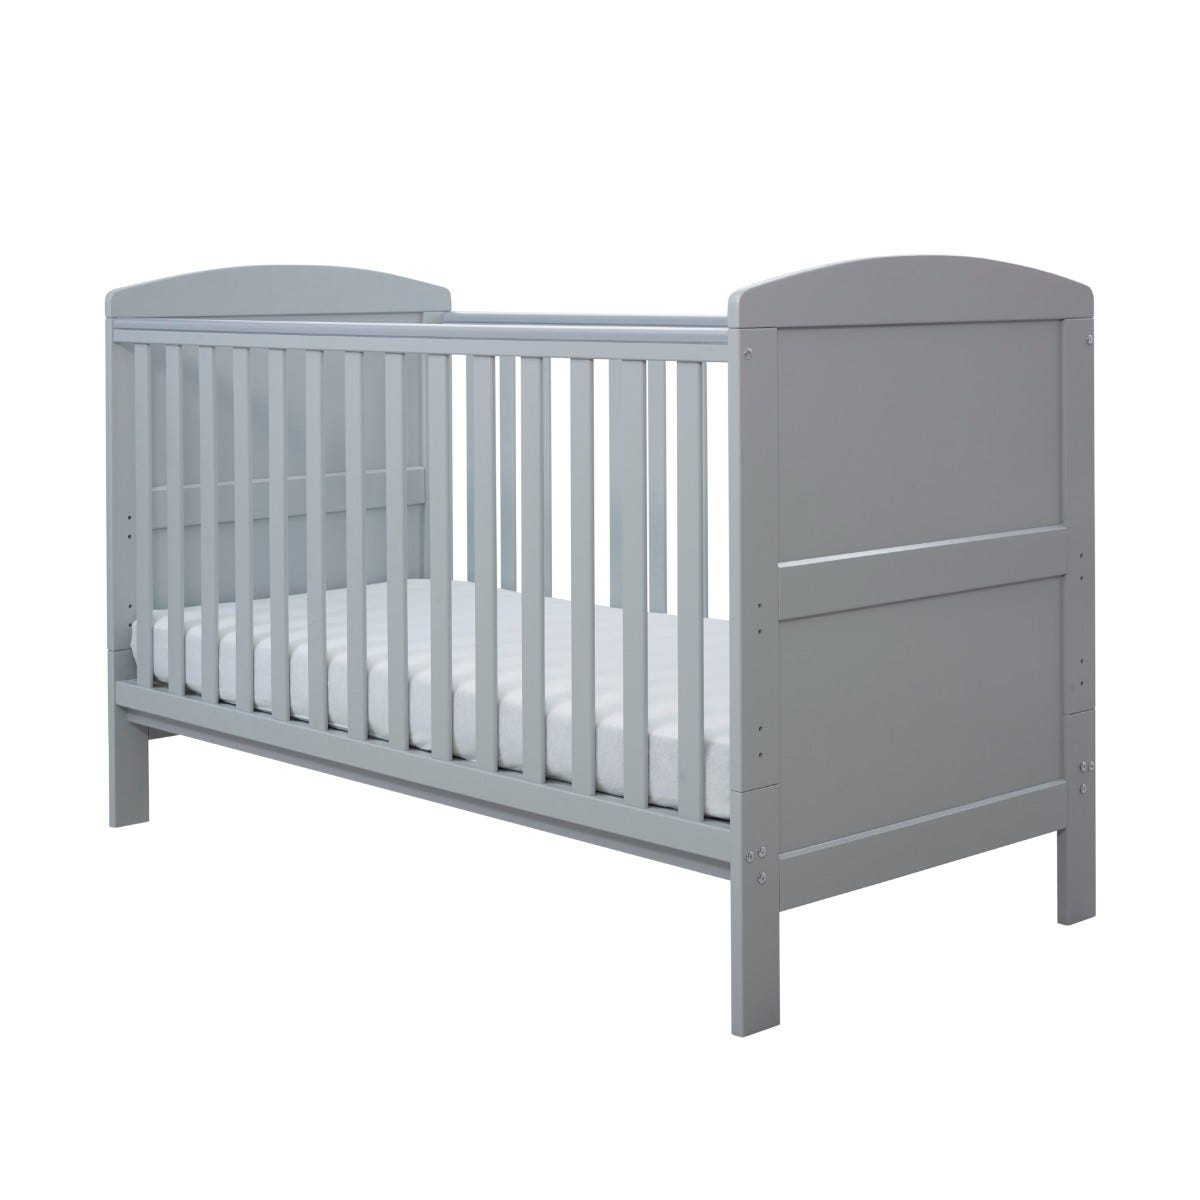 Ickle Bubba Coleby Classic Cot Bed and Pocket Sprung Mattress Grey